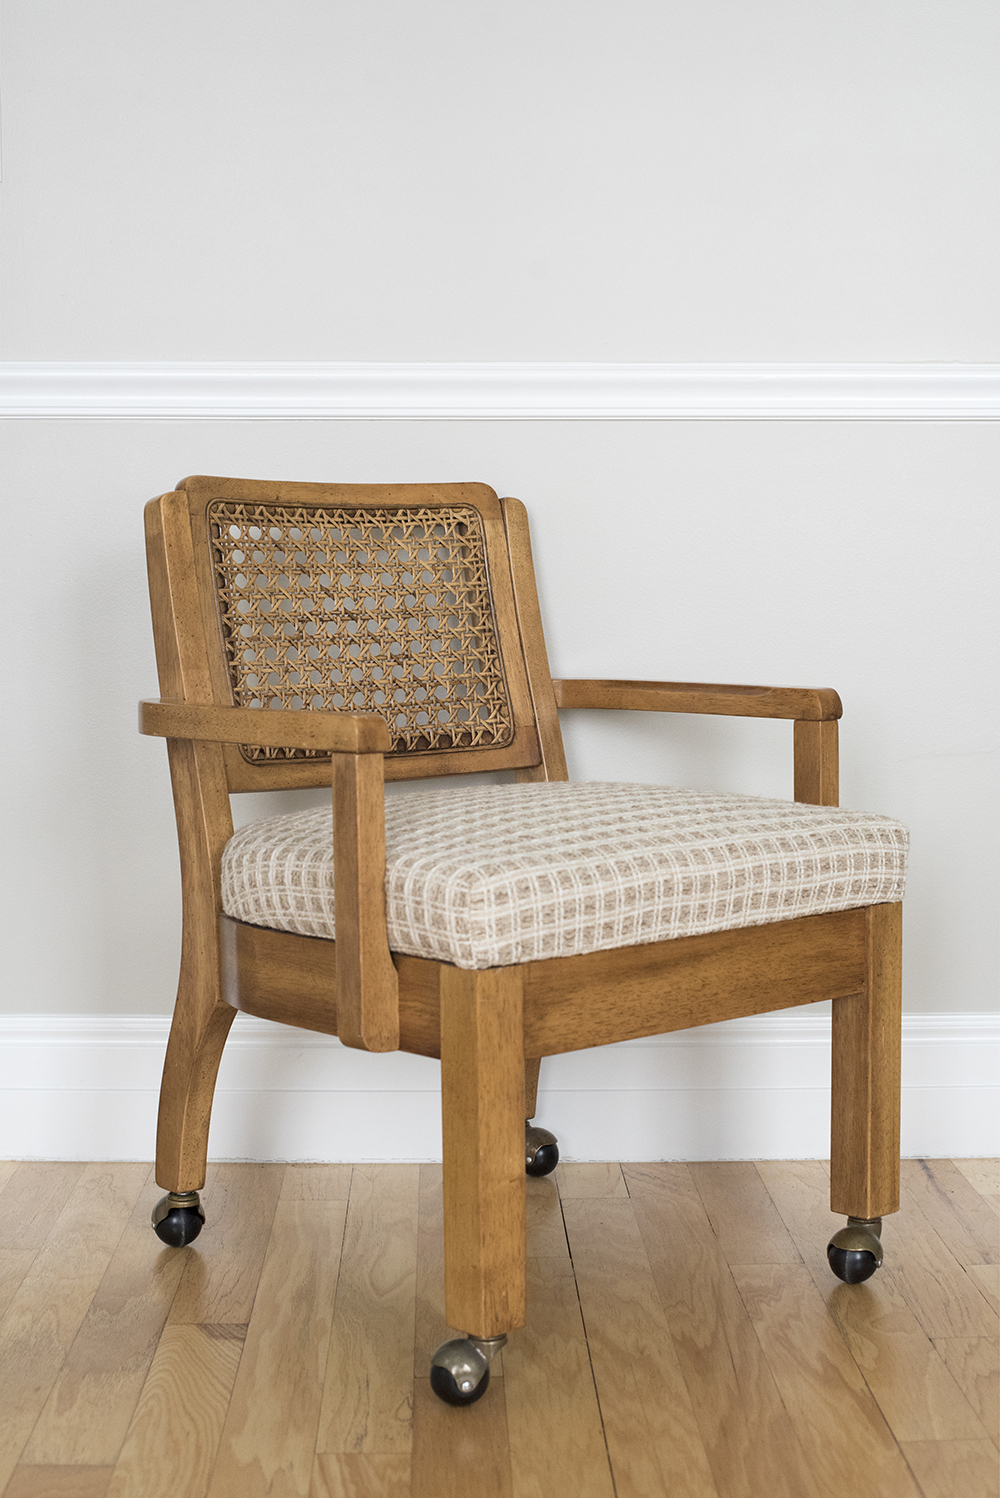 How to Upholster the Seat of a Chair - roomfortuesday.com